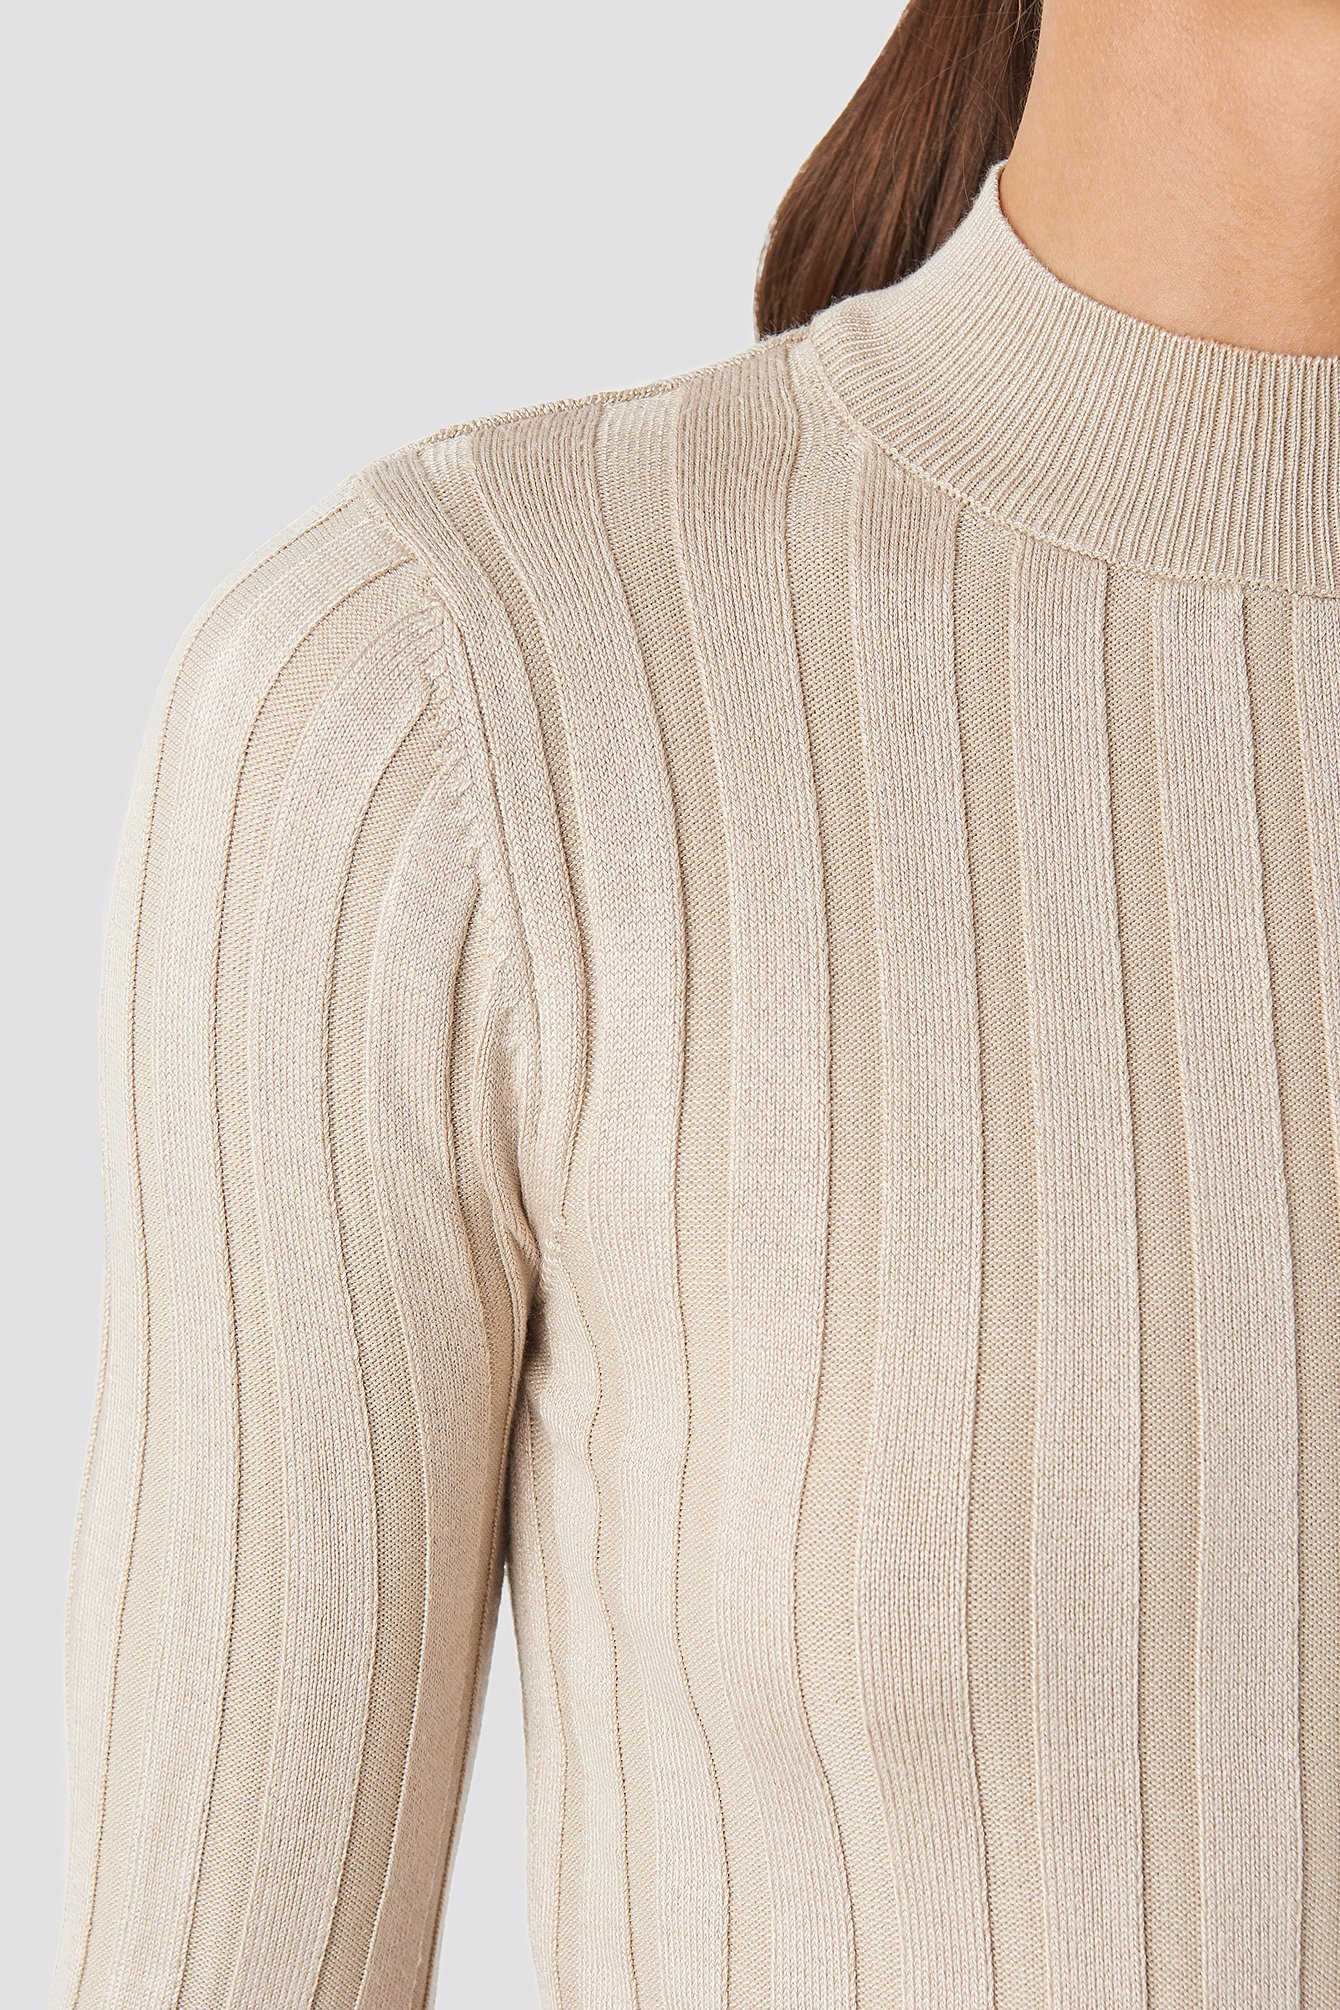 Beige Ribbed High Neck Knitted Sweater